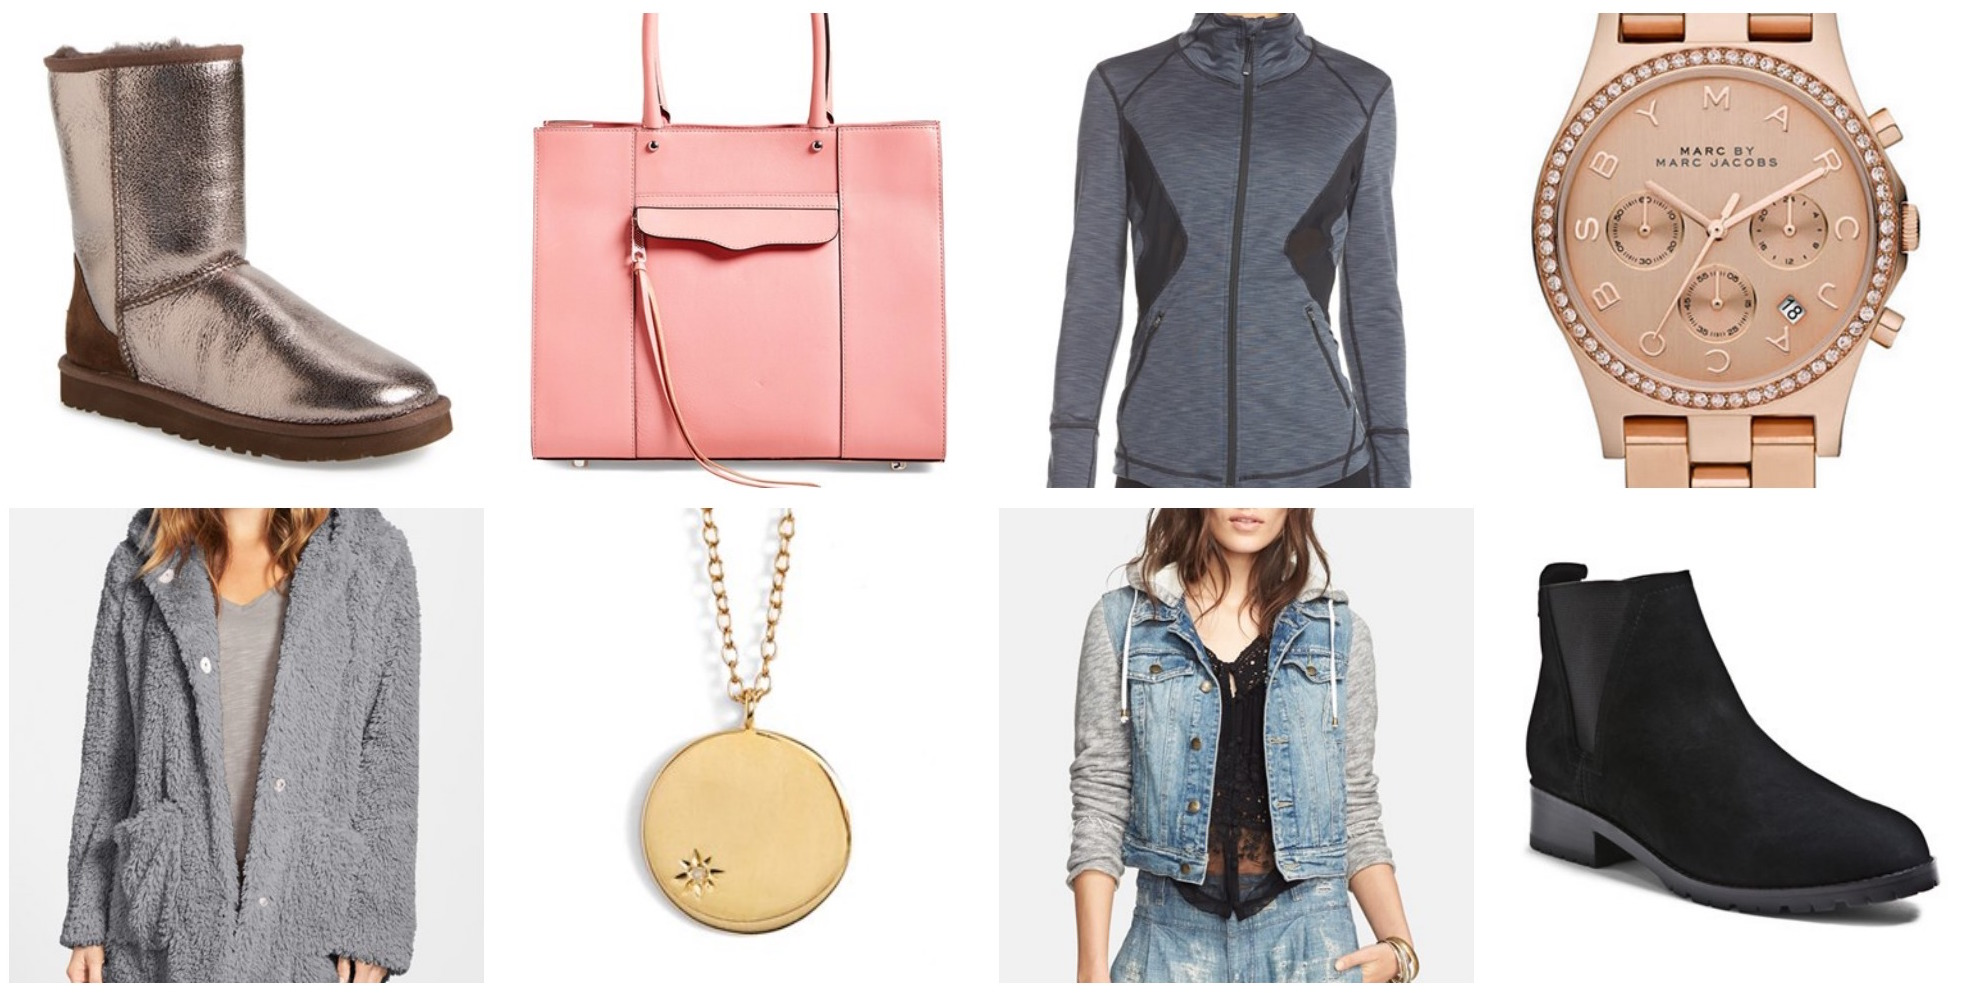 Nordstrom Half Yearly Sale deals and discounts